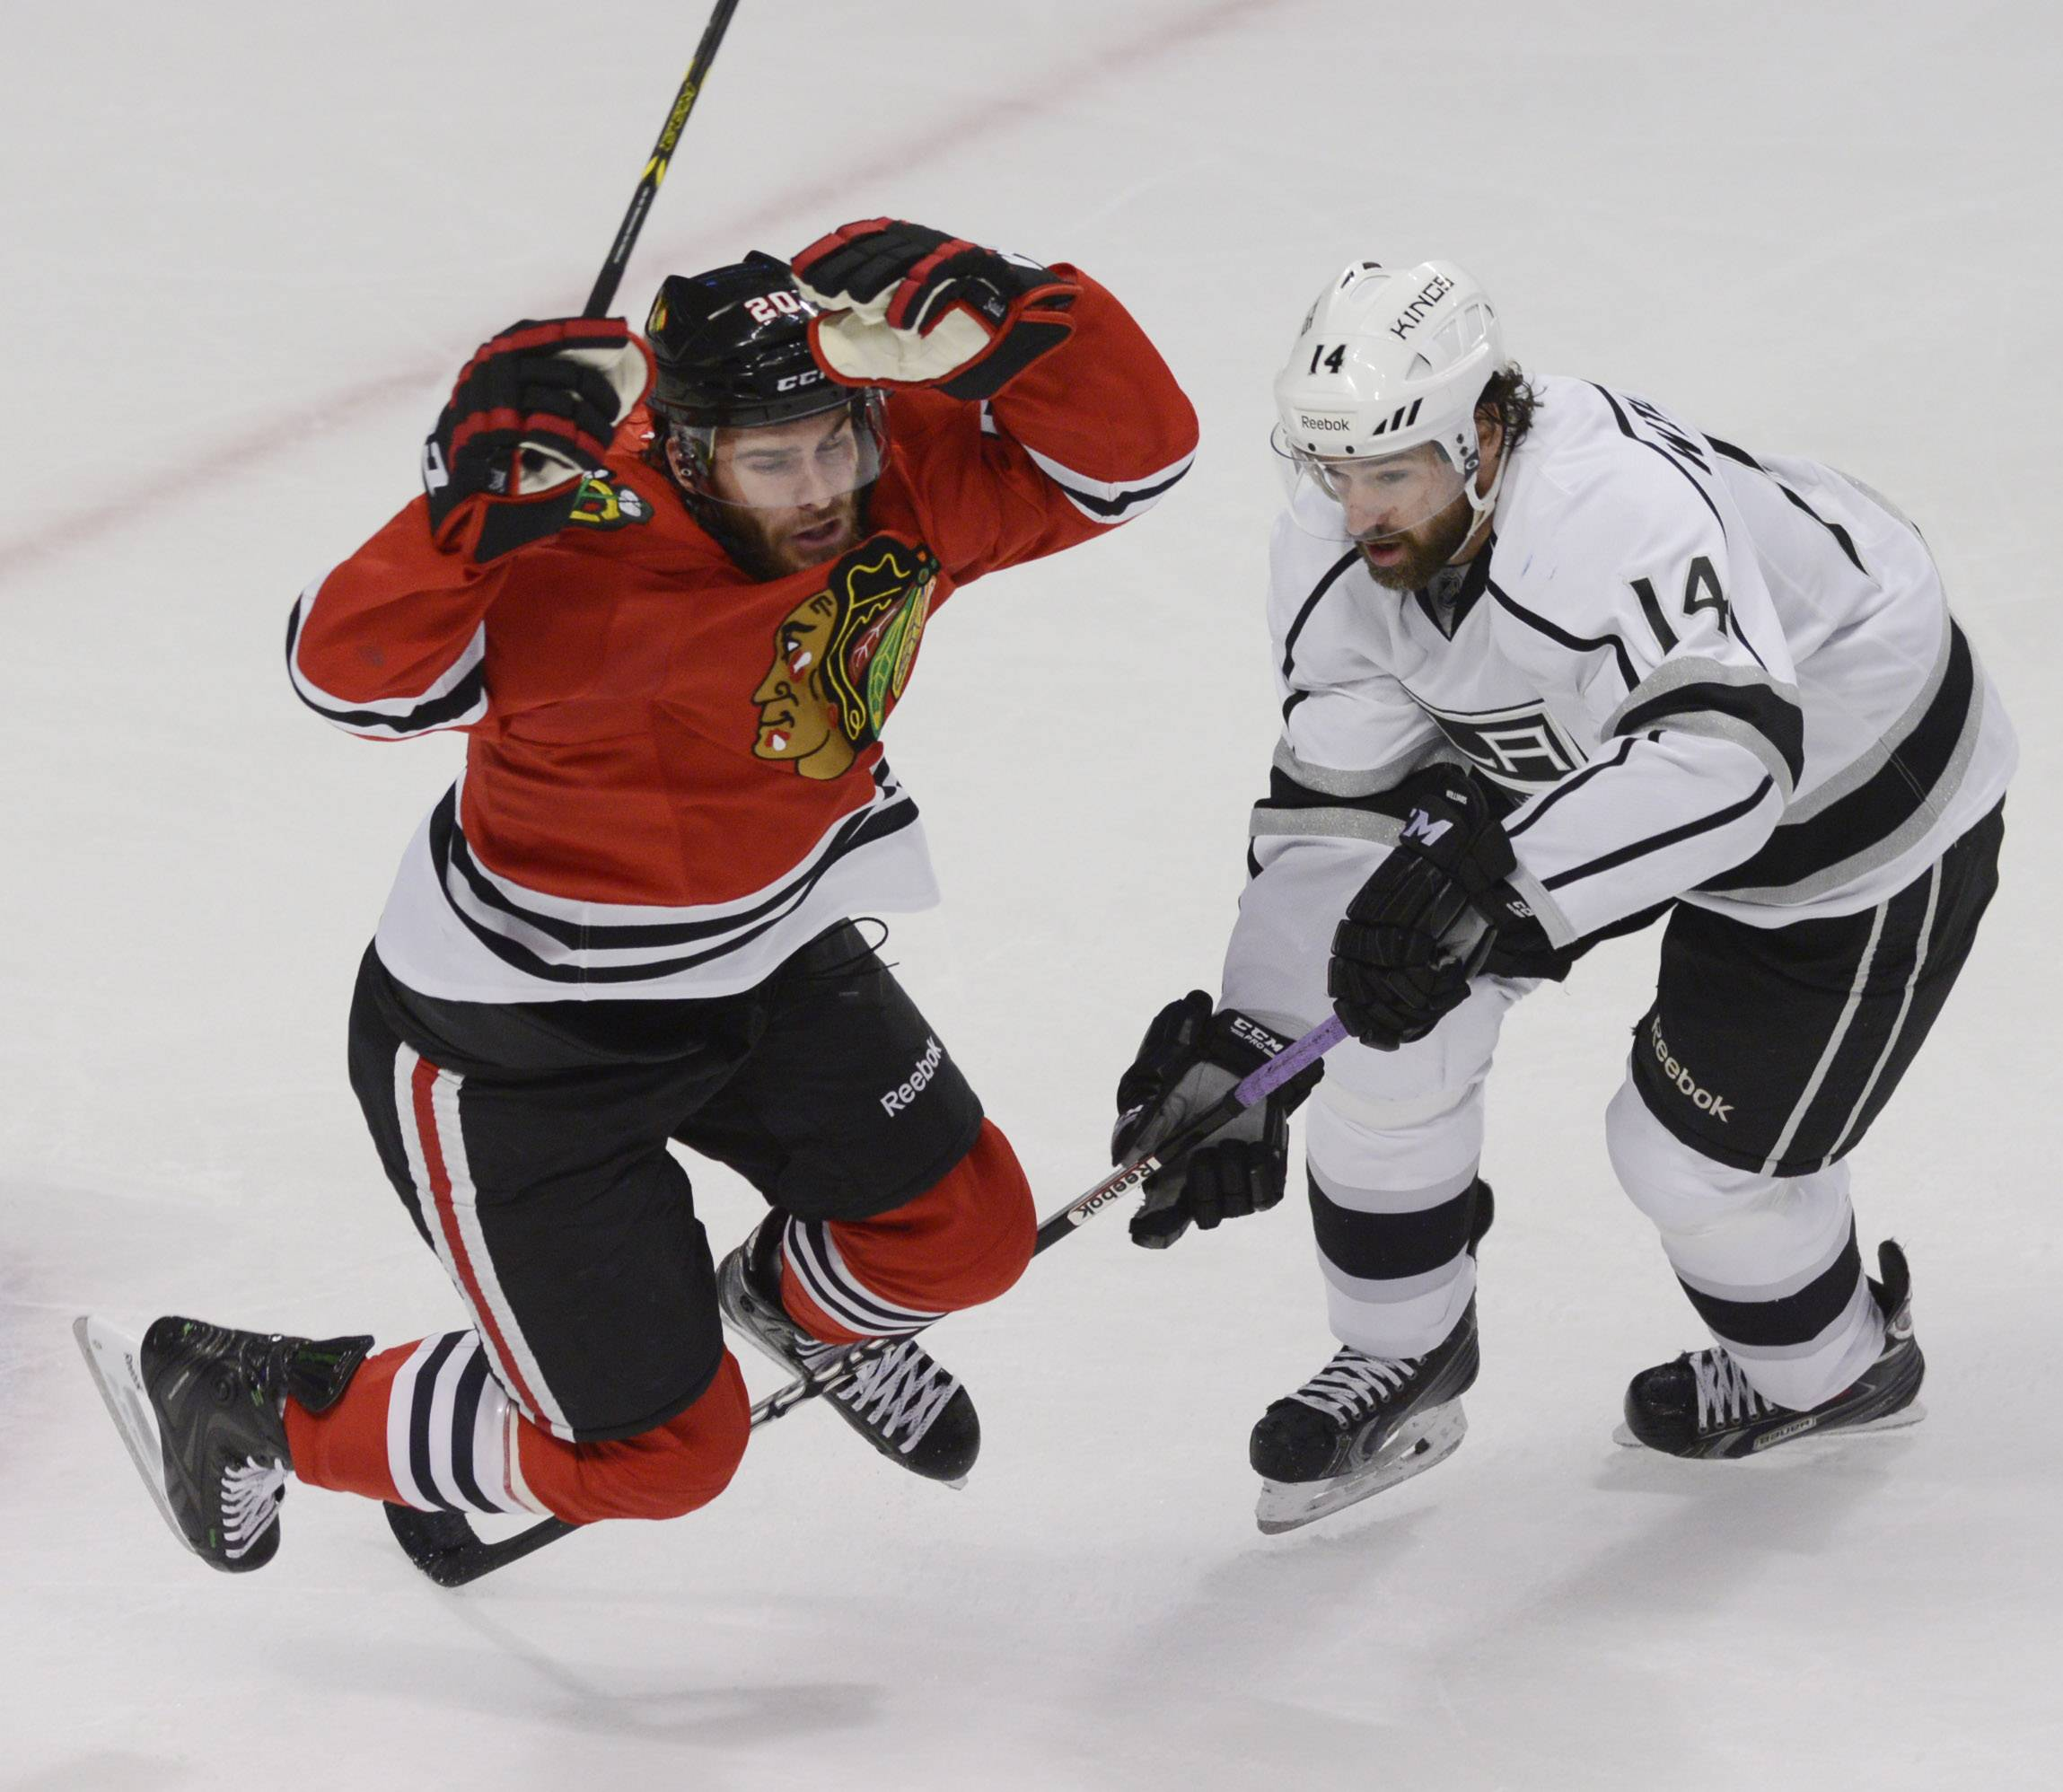 Chicago Blackhawks left wing Brandon Saad trips over Los Angeles Kings right wing Justin Williams' stick during Sunday's game at the United Center in Chicago.